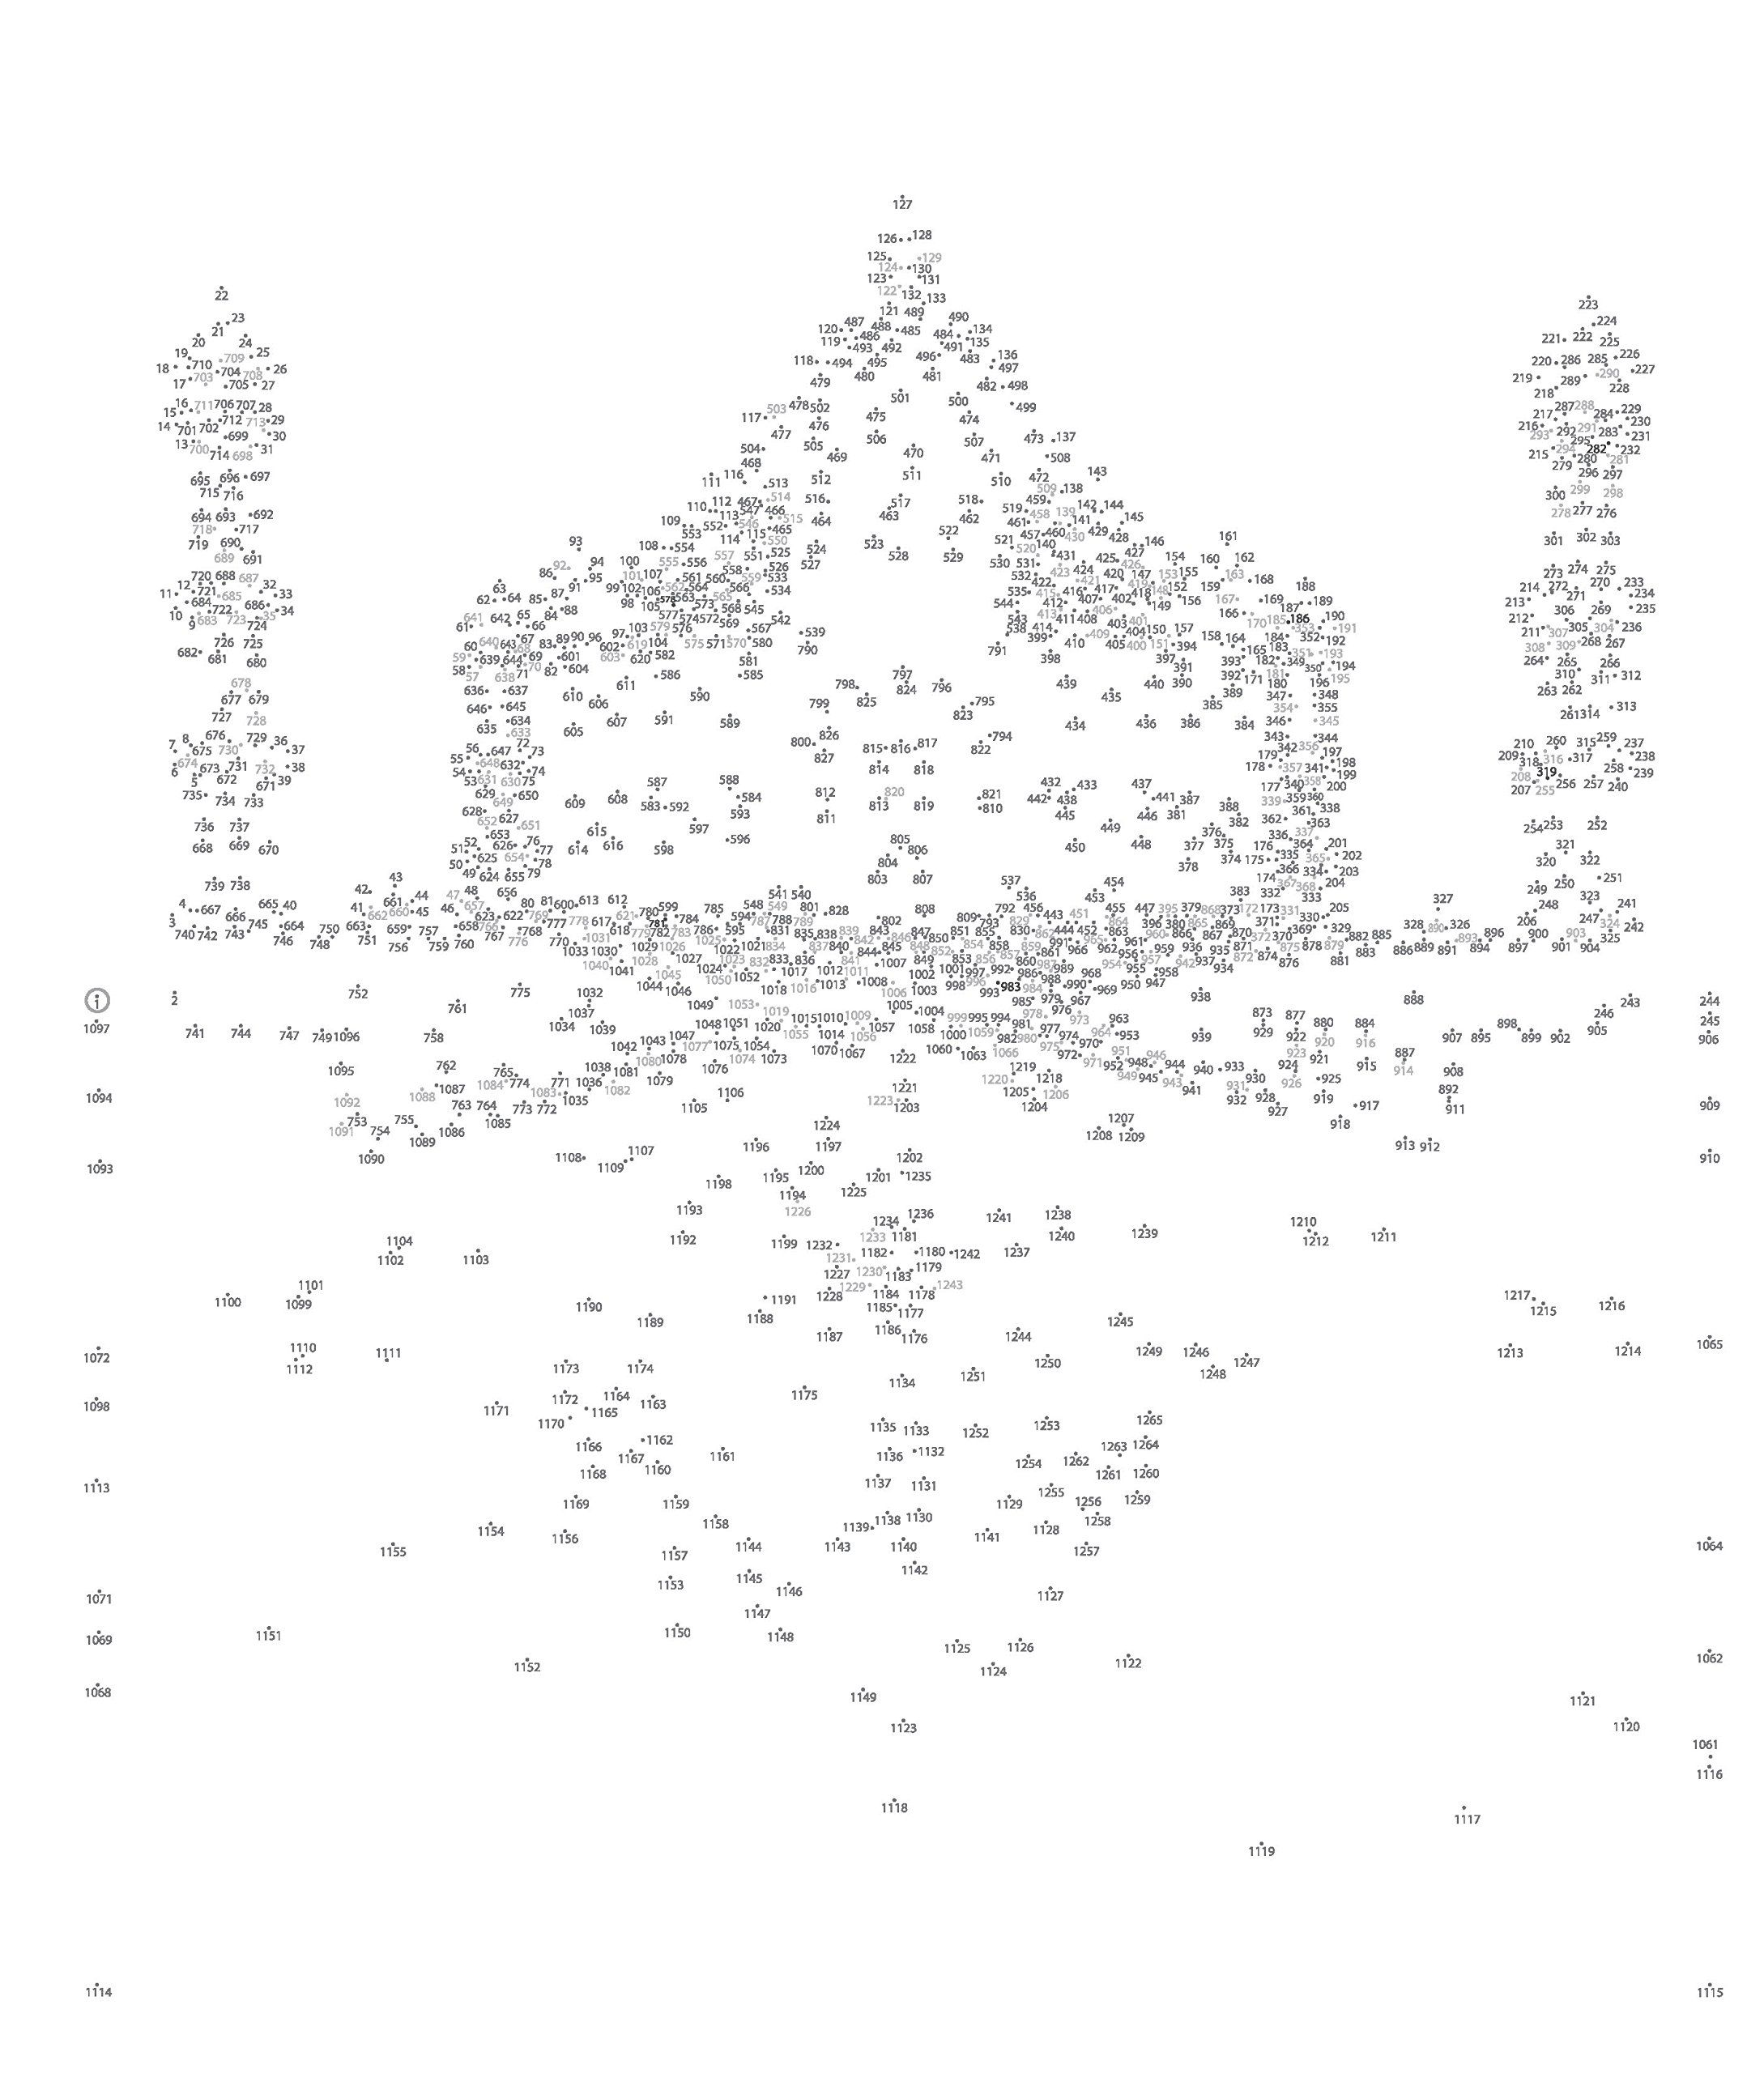 This is an image of Peaceful Free Extreme Dot to Dot Printable